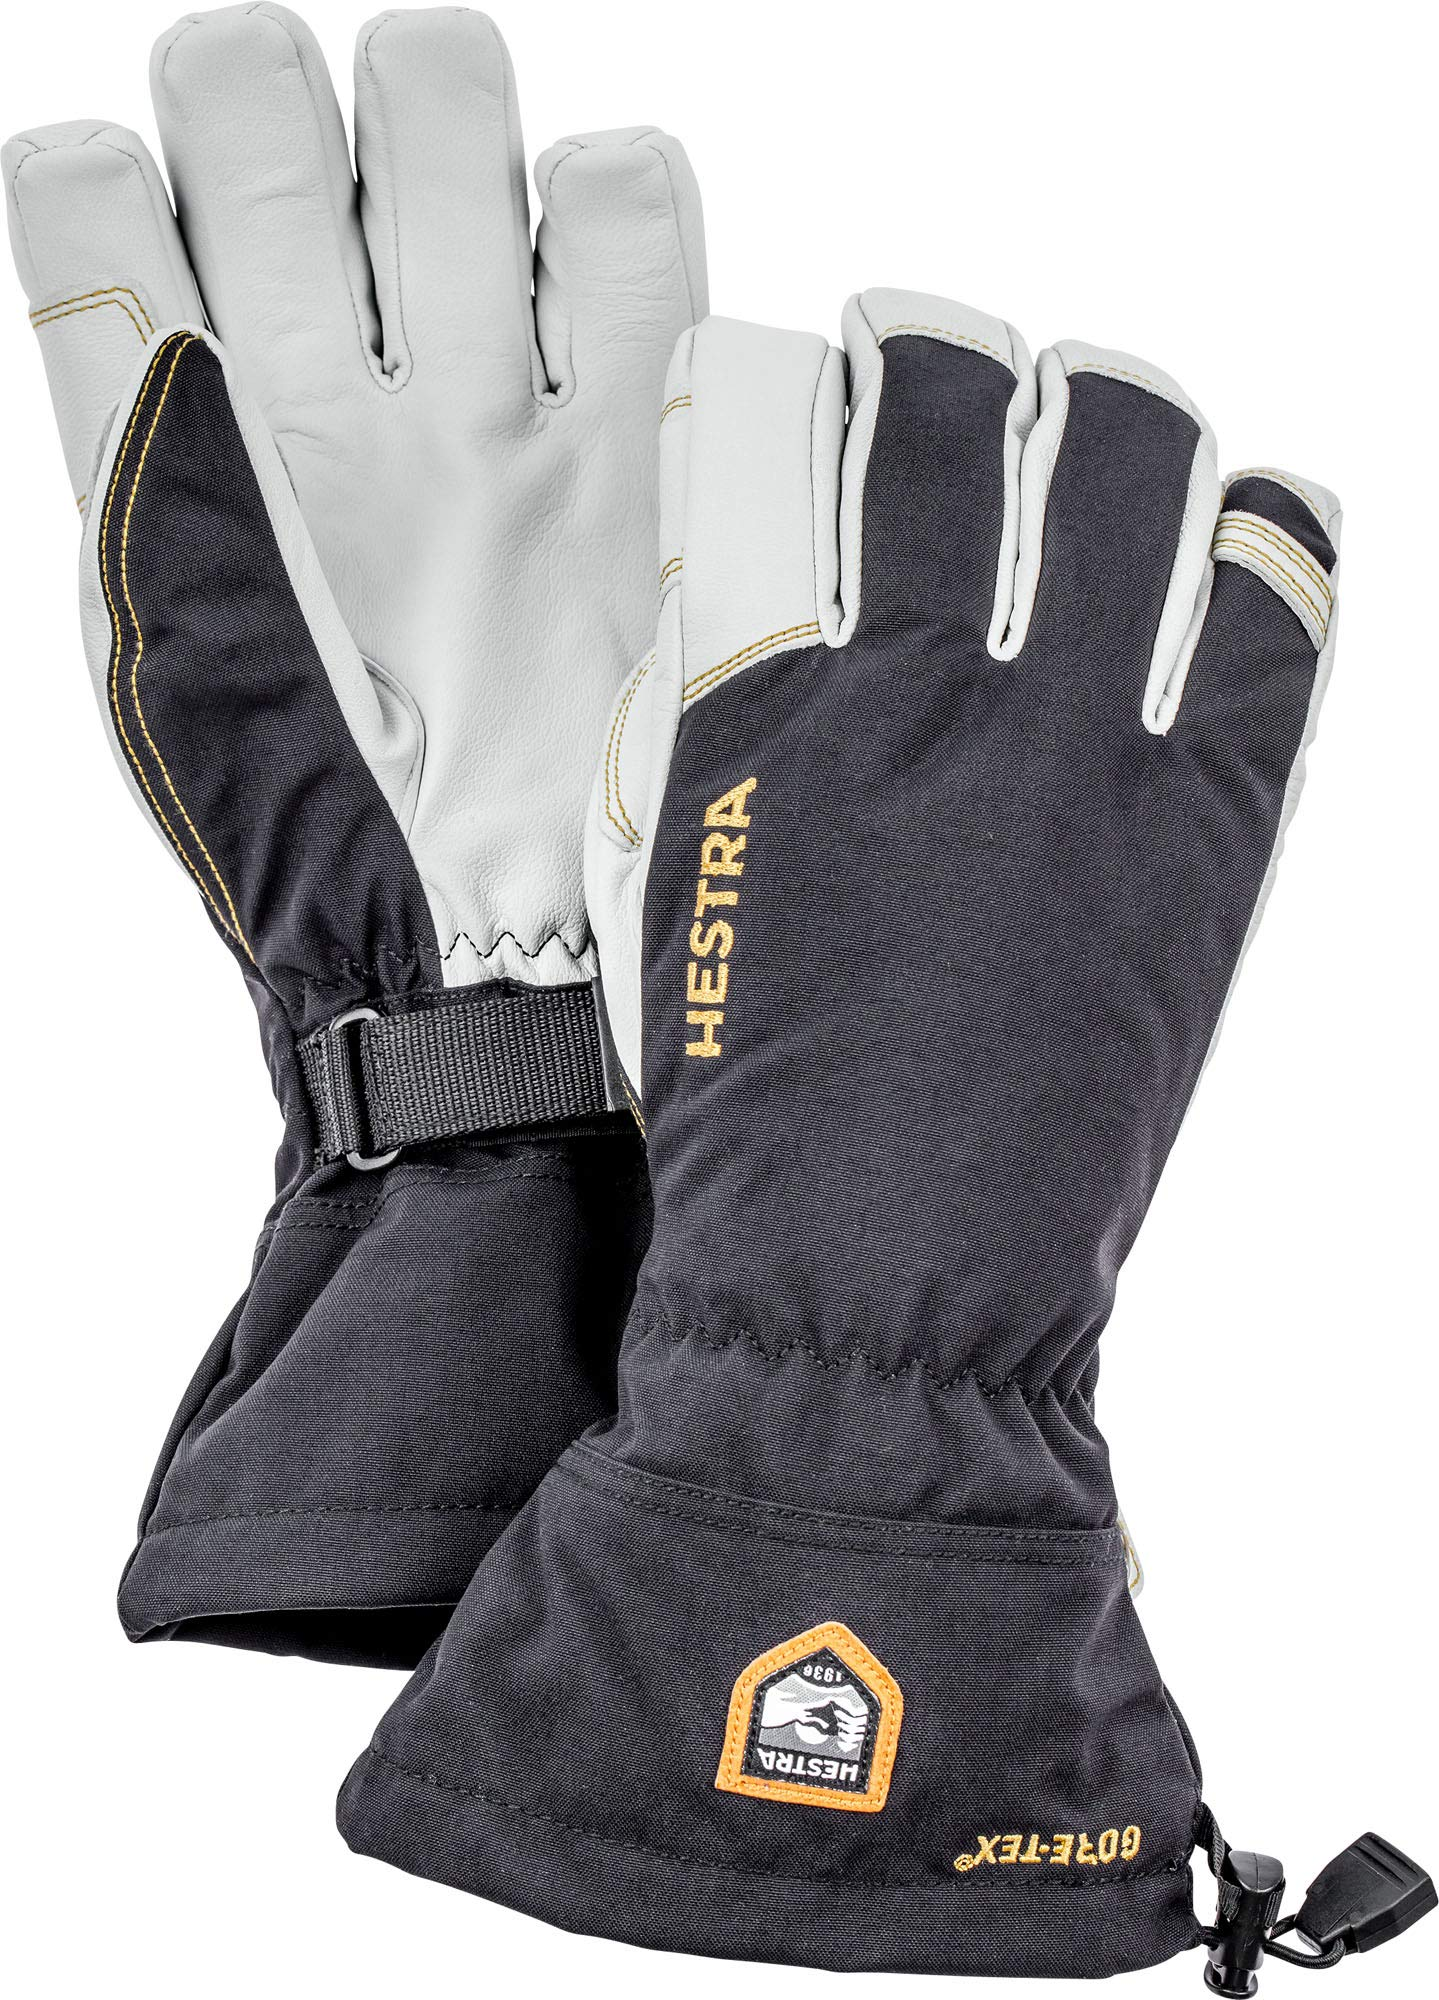 Hestra Army Leather Gore-TEX - Waterproof, Long-Cuffed 5-Finger Snow Glove for Skiing and Mountaineering